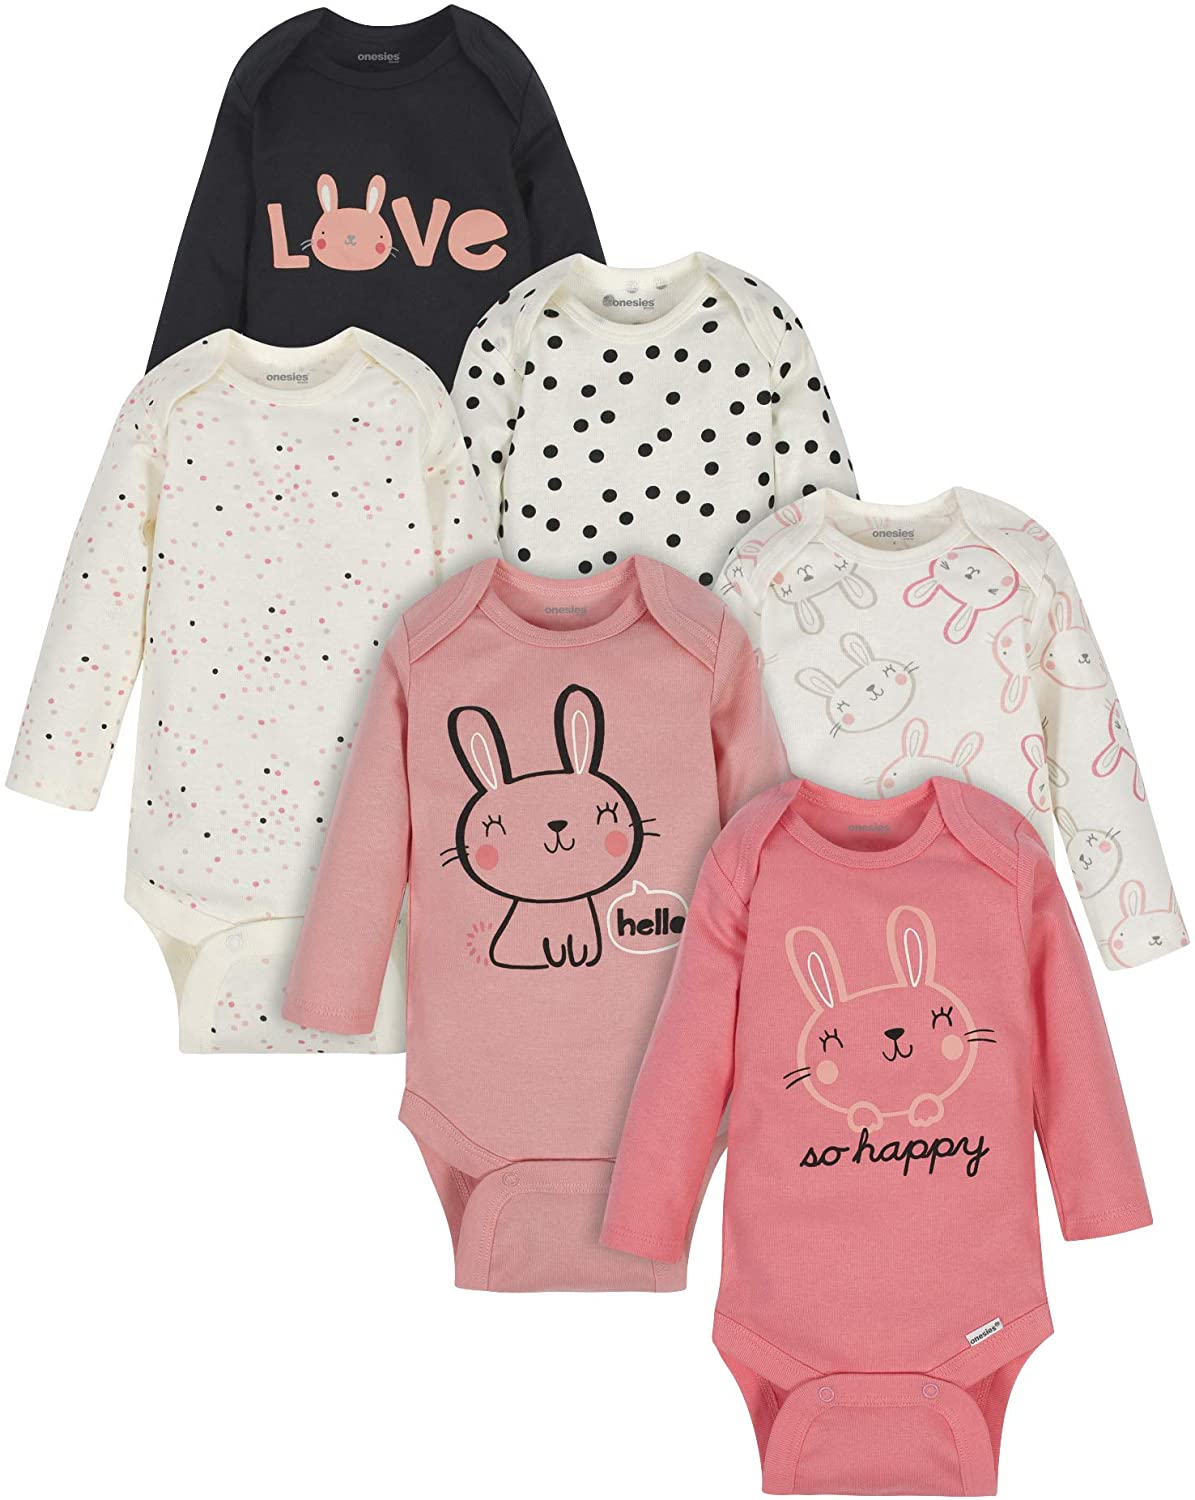 Cute girl onesie shearling pocket  onesie pink lightning bolt  baby clothes with lightning  boho baby onesie with pocket